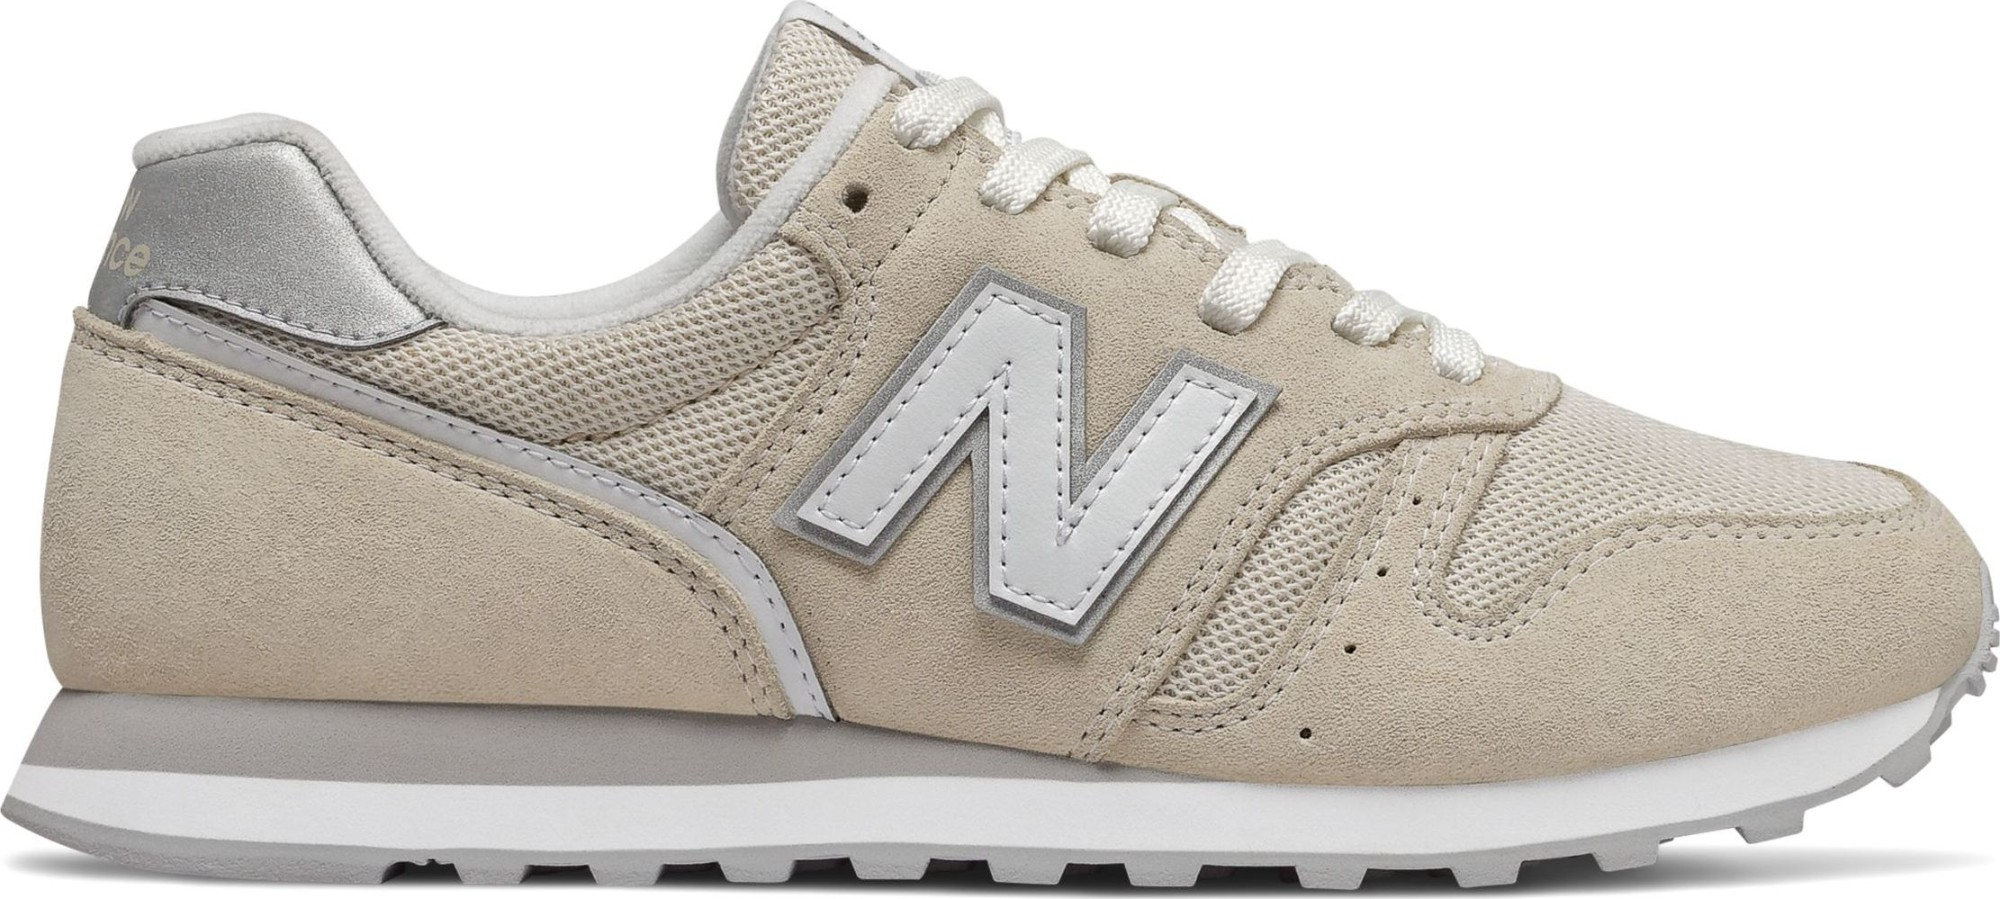 New Balance WL373 Turtledove 37